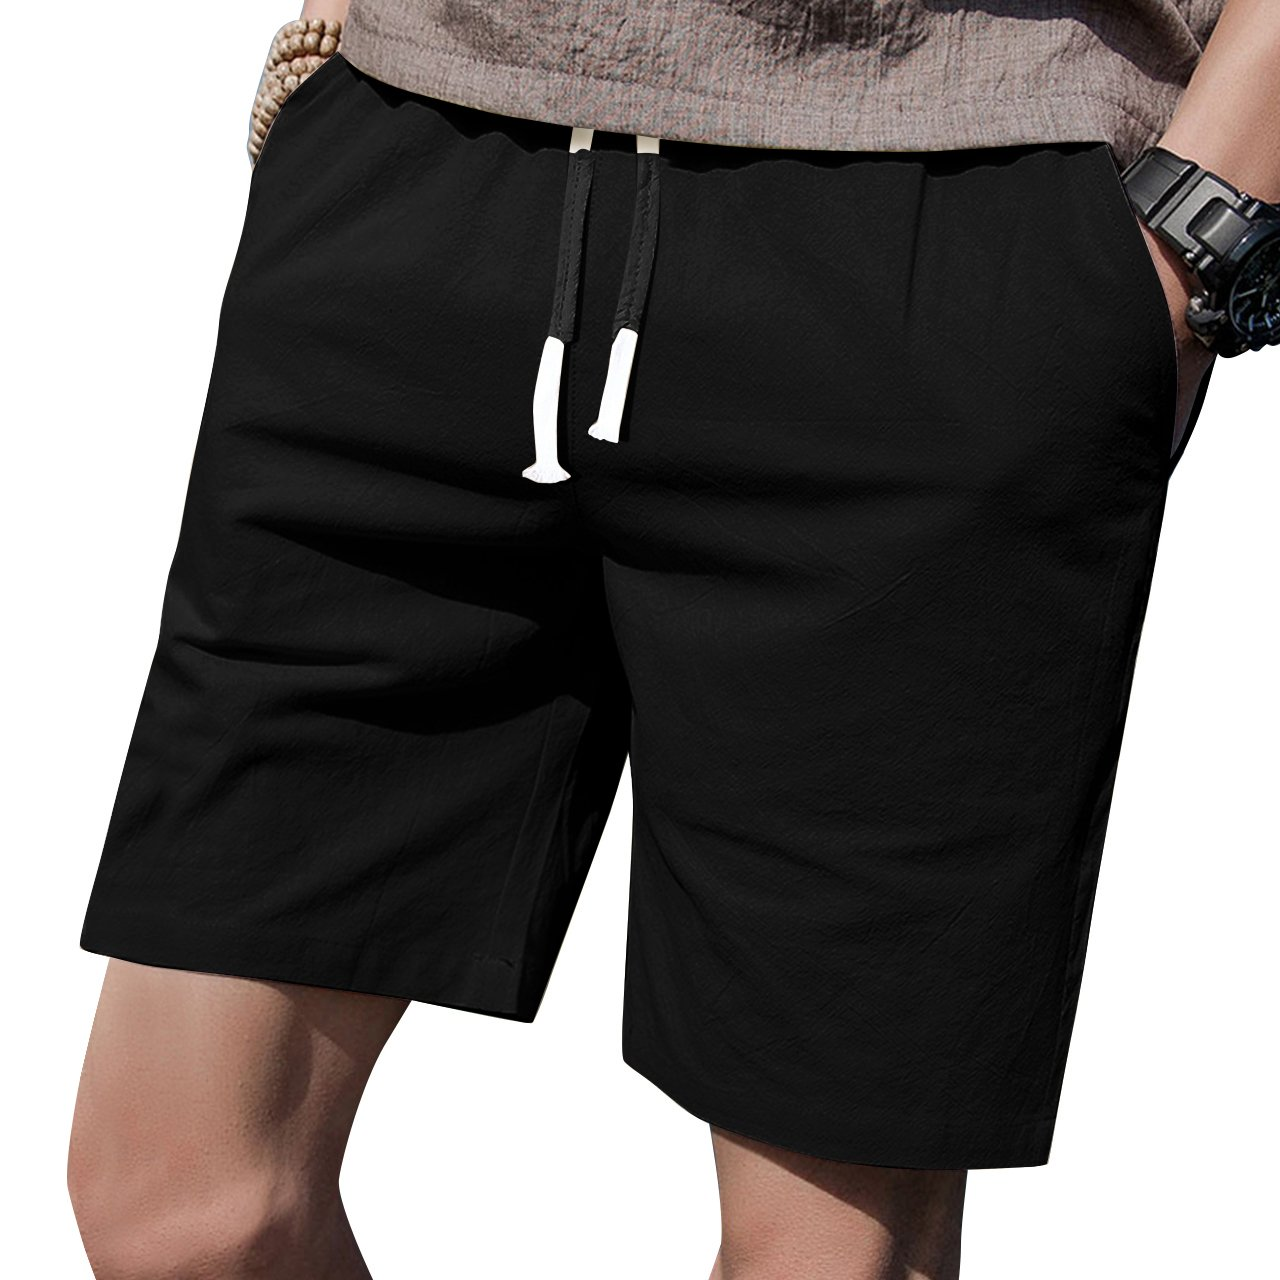 LTIFONE Mens 7'' Inseam Causal Beach Shorts Elastic Waist Drawstring Lightweight Slim Fit Summer Short Pants Pockets(Black,M)